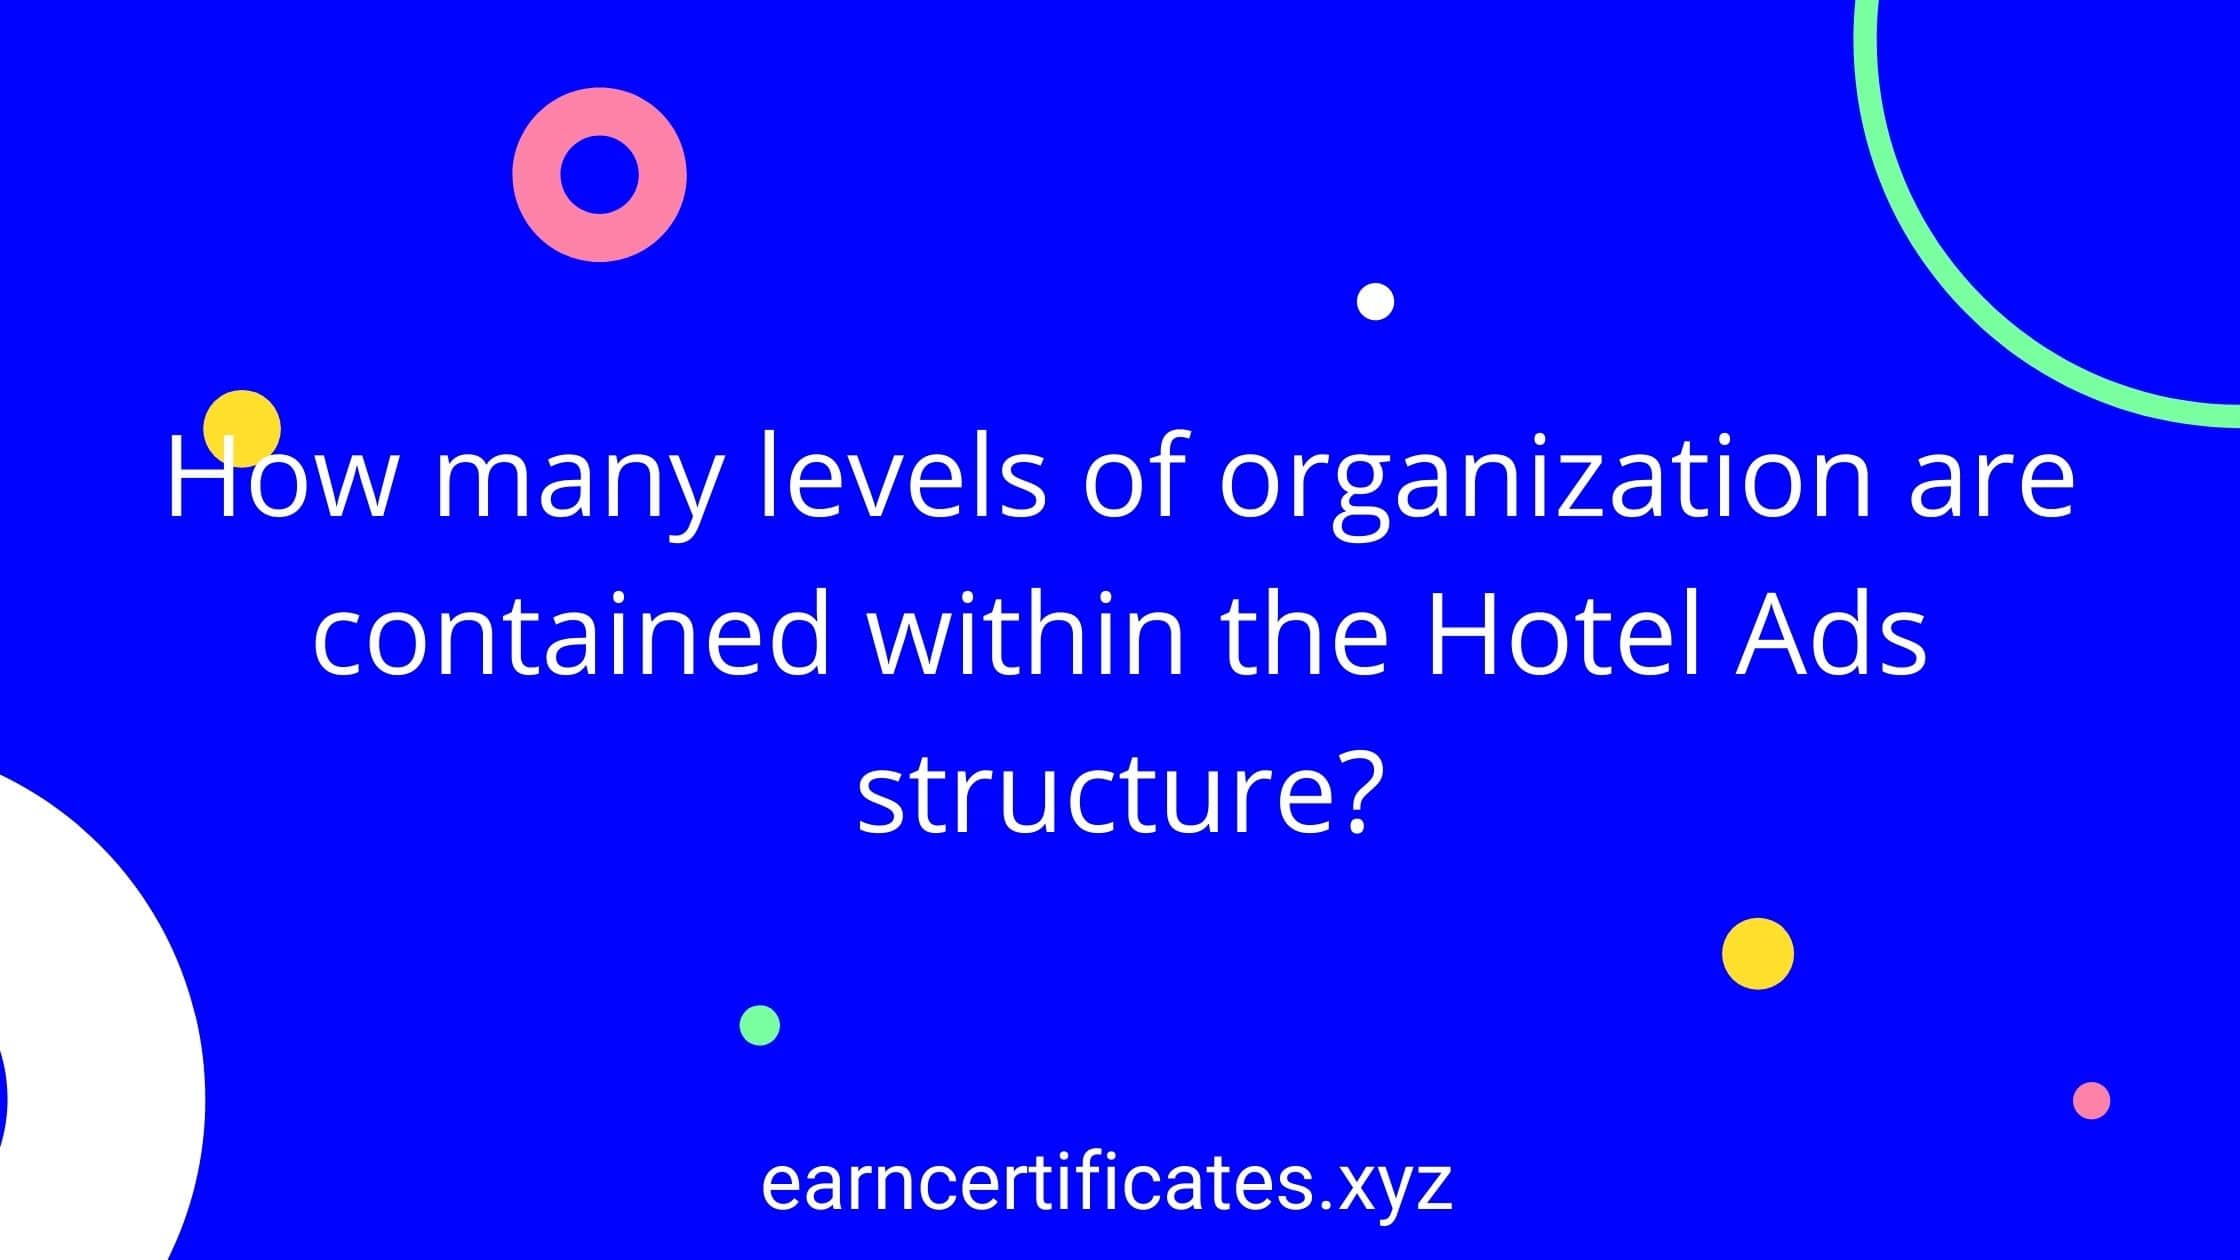 How many levels of organization are contained within the Hotel Ads structure?